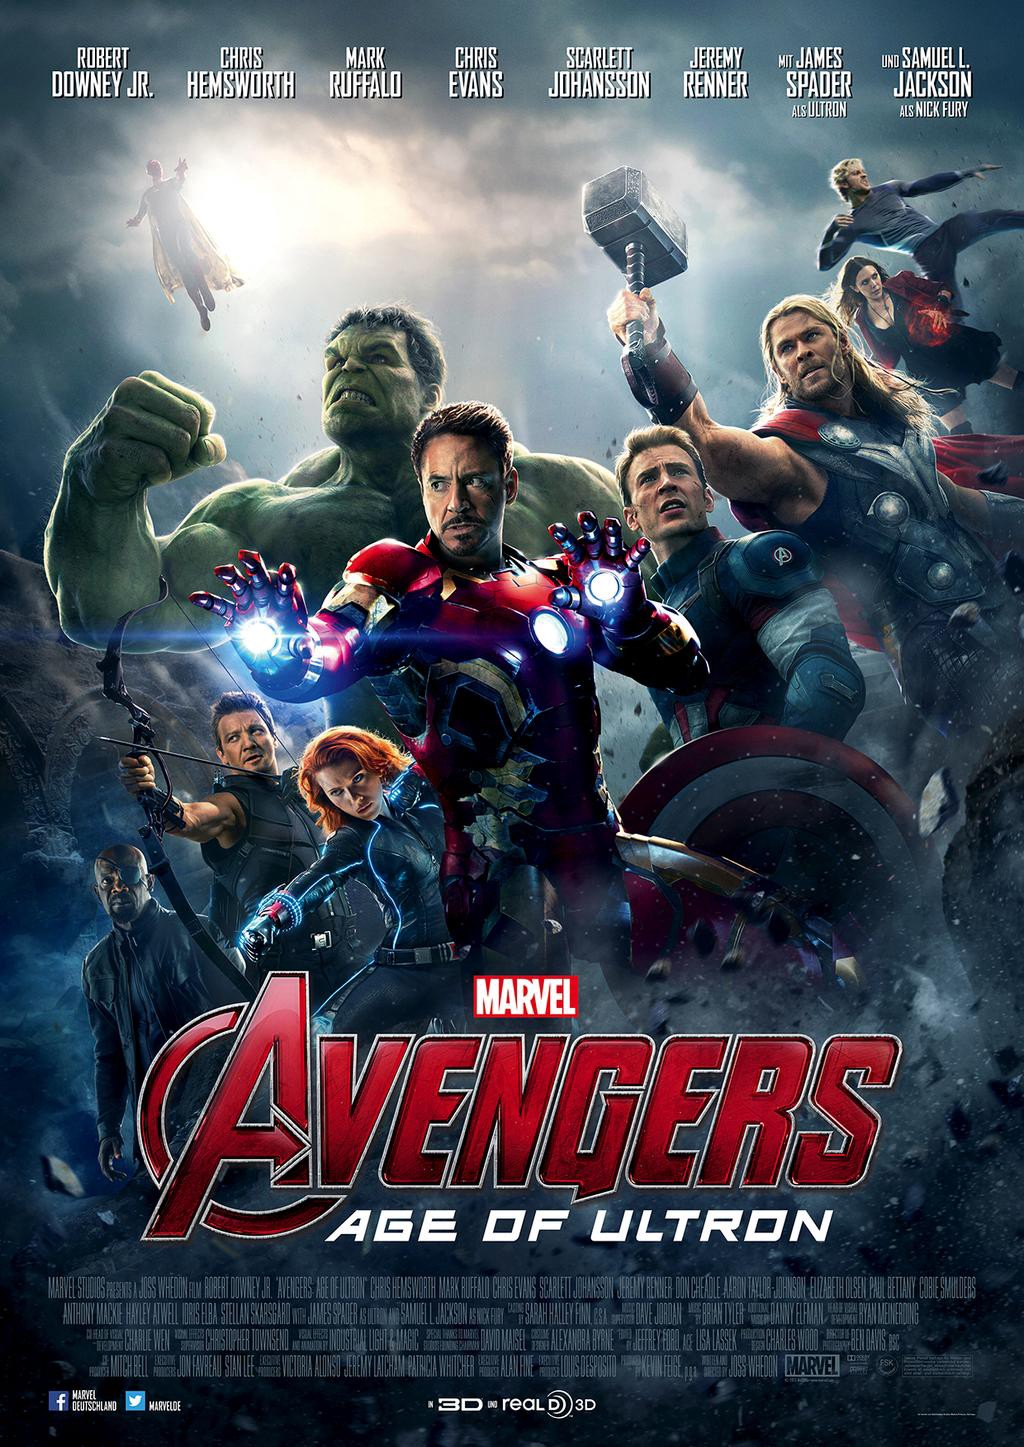 Avengers: Age of Ultron. And for gosh sake, watch your language. | by Nigel  Hall | The Orange Blog | Medium